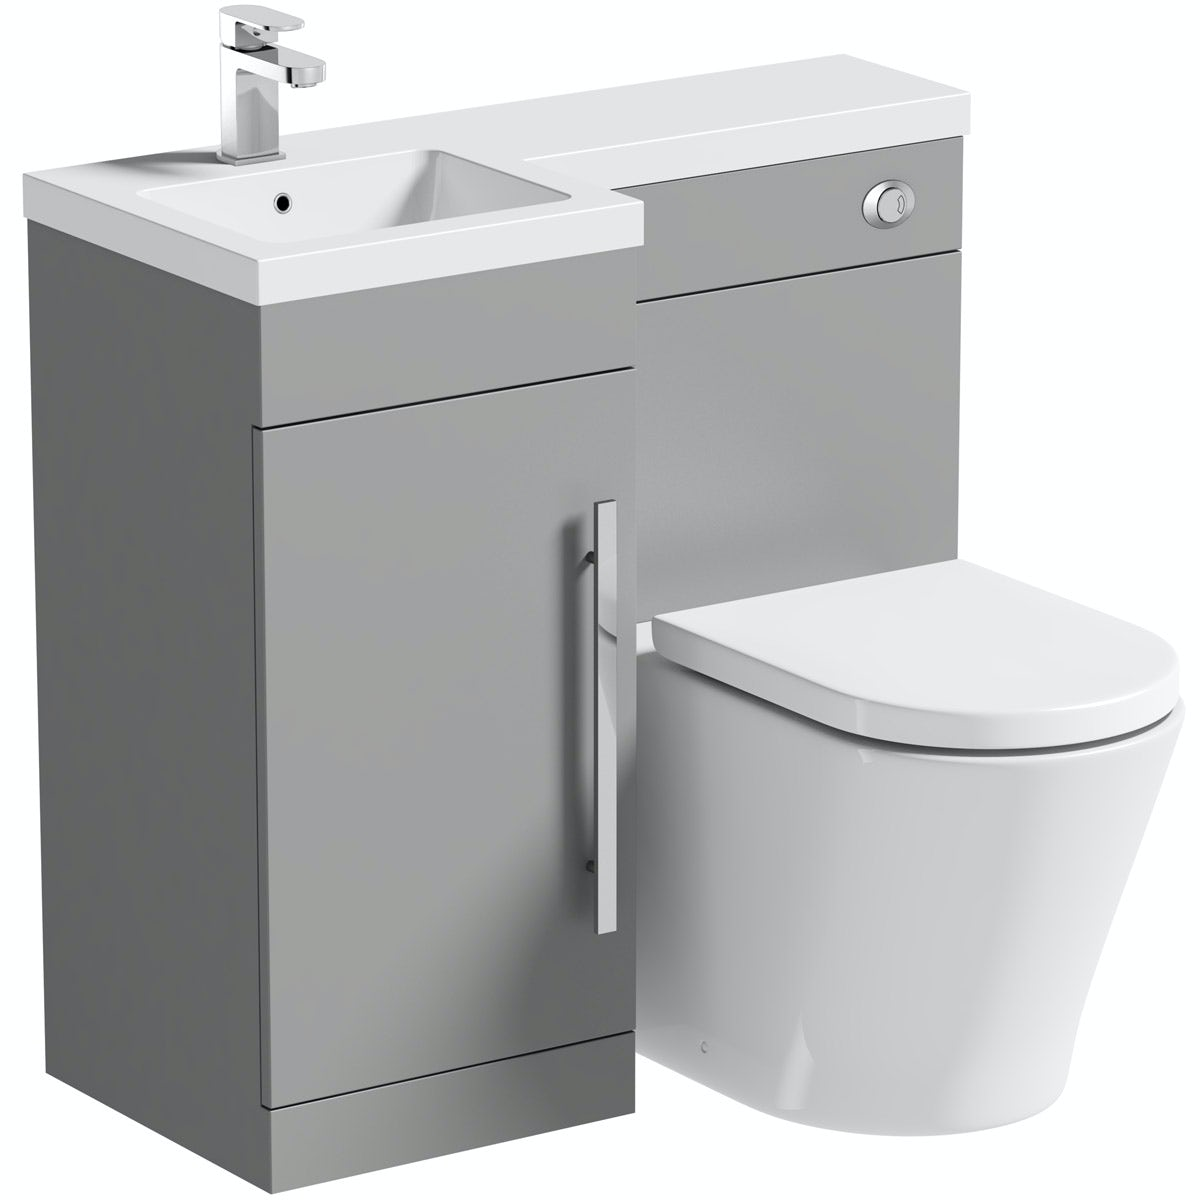 Orchard MySpace grey left handed combination unit with Tate toilet